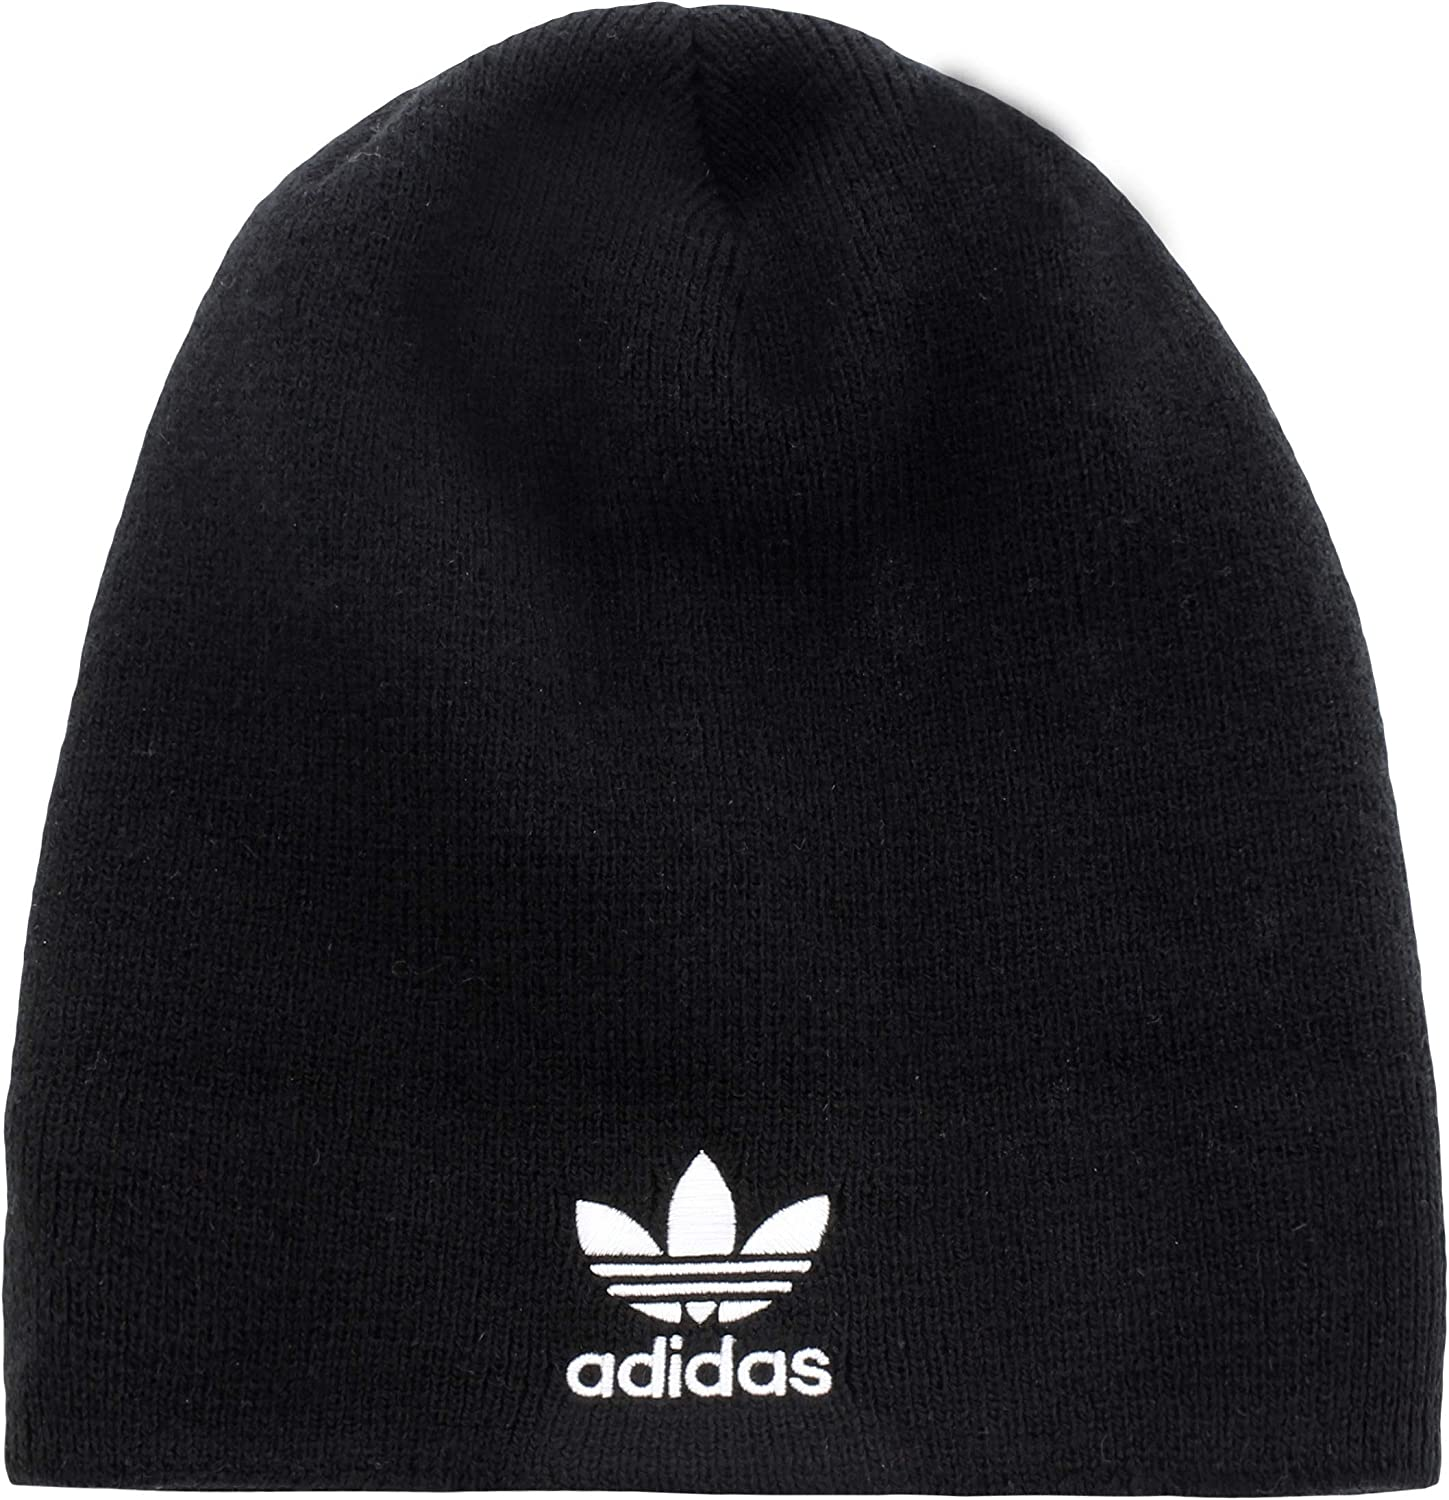 adidas Originals Foundation - Gorro para Hombre, Hombre, Color ...